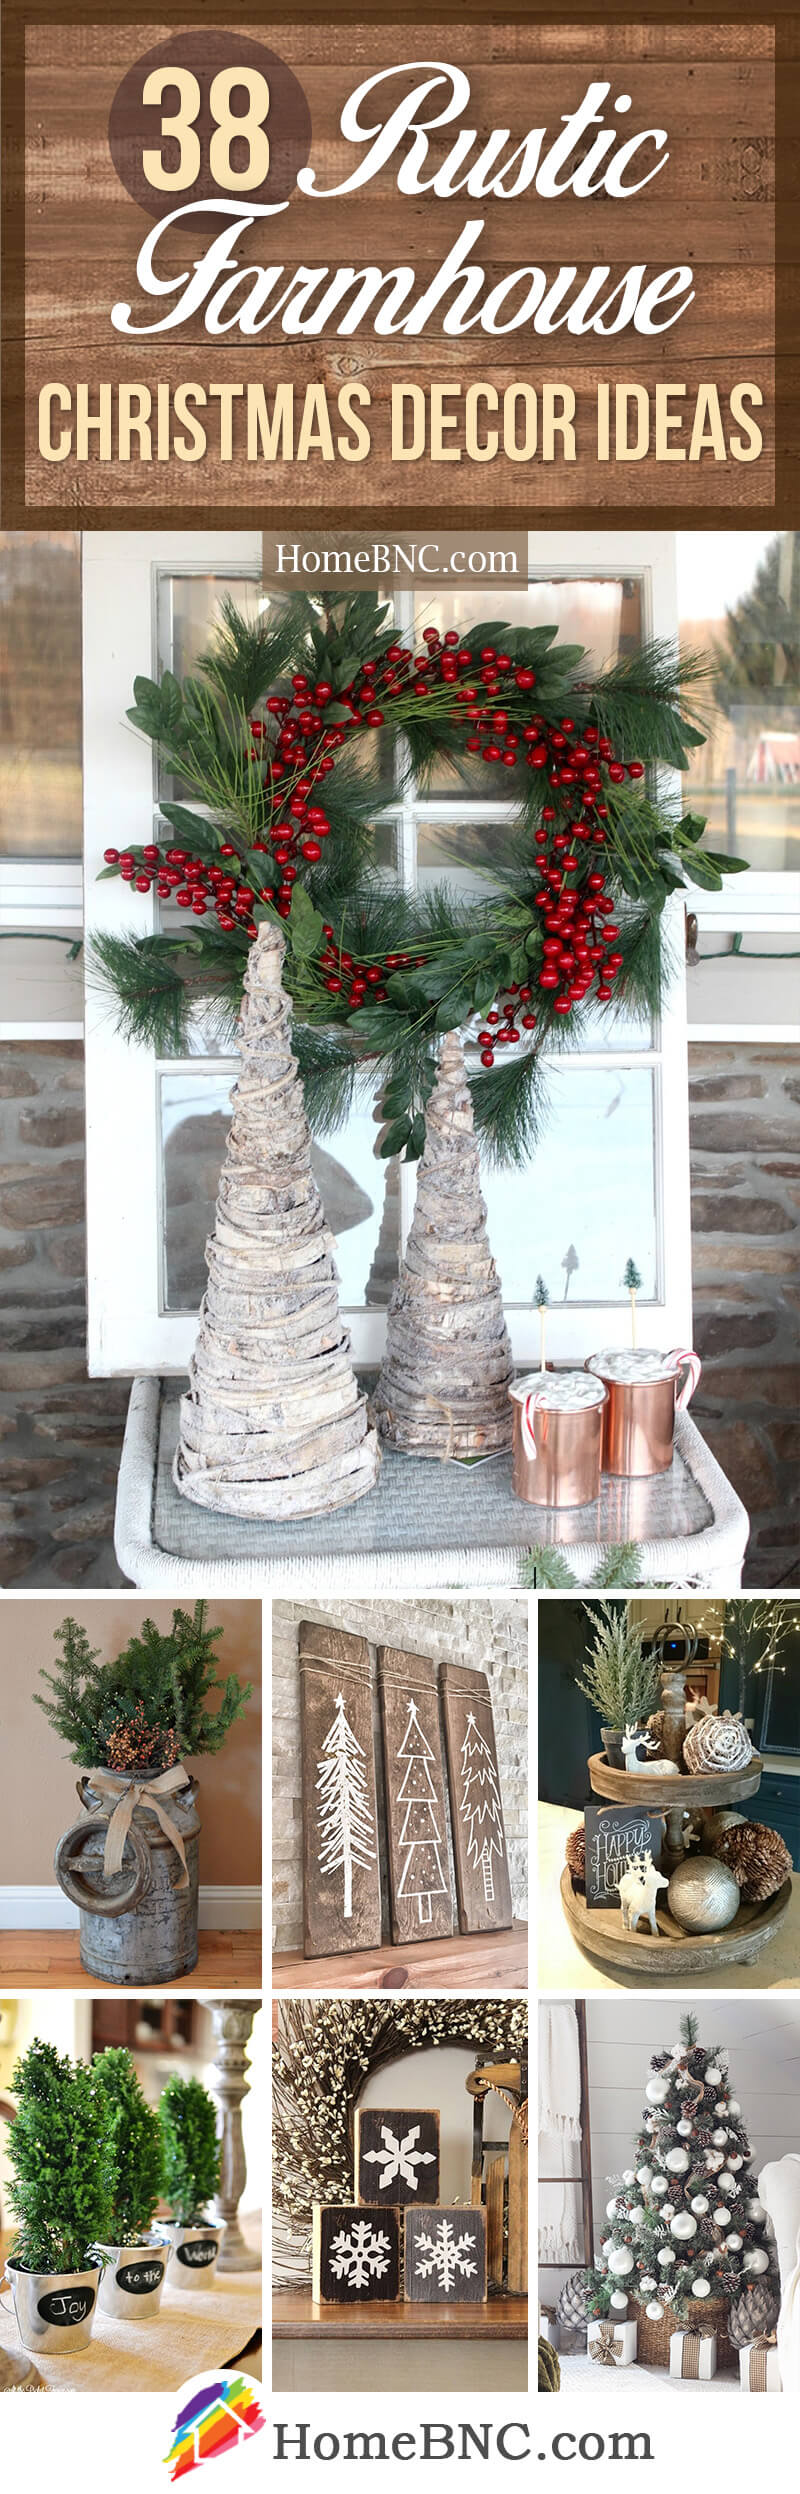 38 fabulous rustic farmhouse christmas decor ideas to festive up your home - Farmhouse Christmas Decor